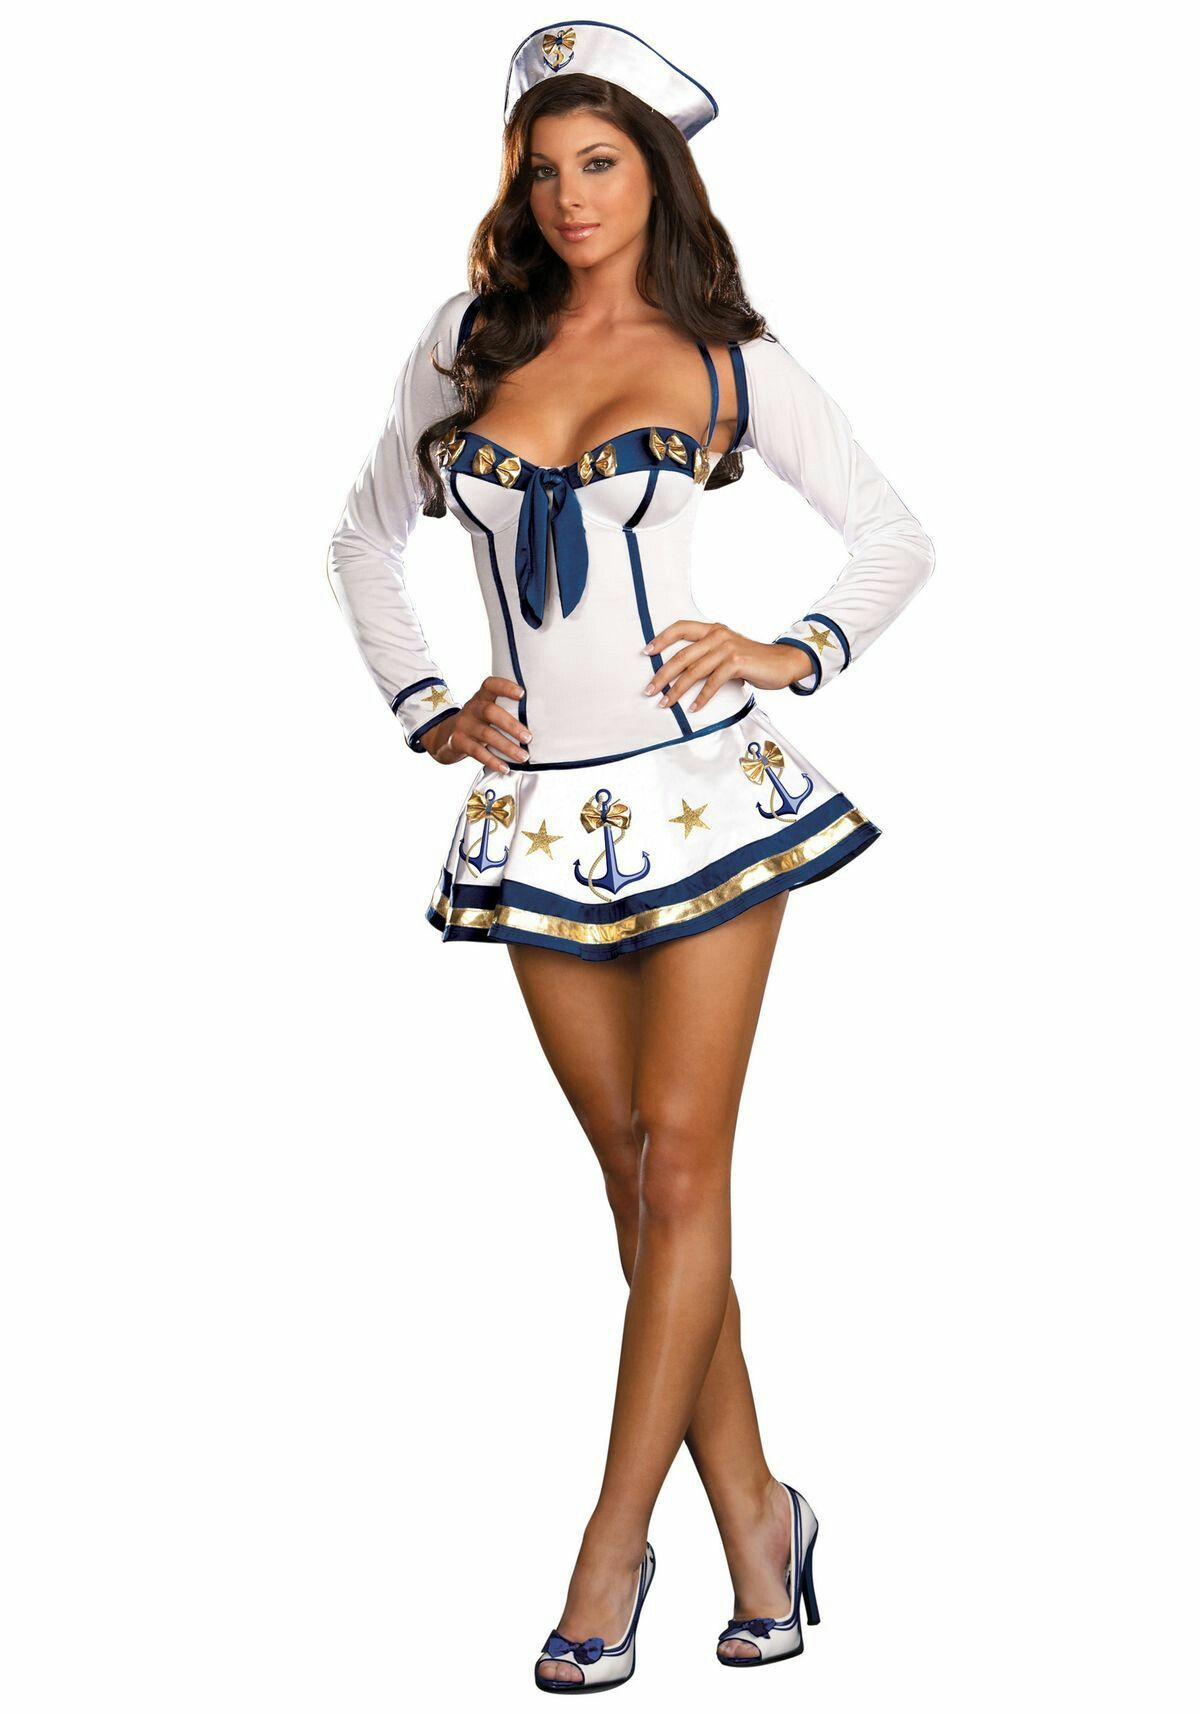 makin waves costume large dress size you can get more details by clicking on the sponsored image